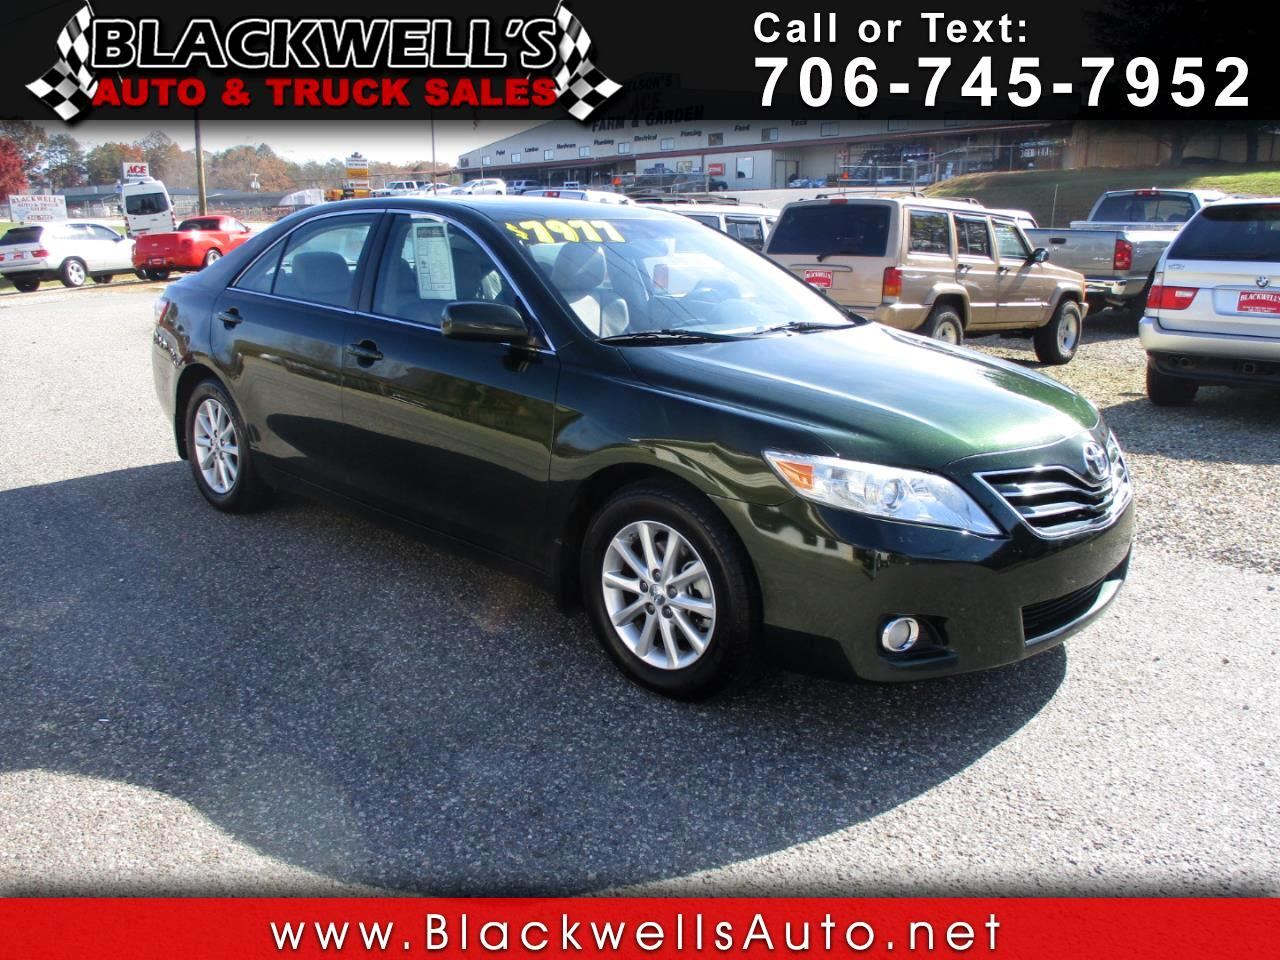 2010 Toyota Camry 4dr Sdn I4 Auto XLE (Natl)